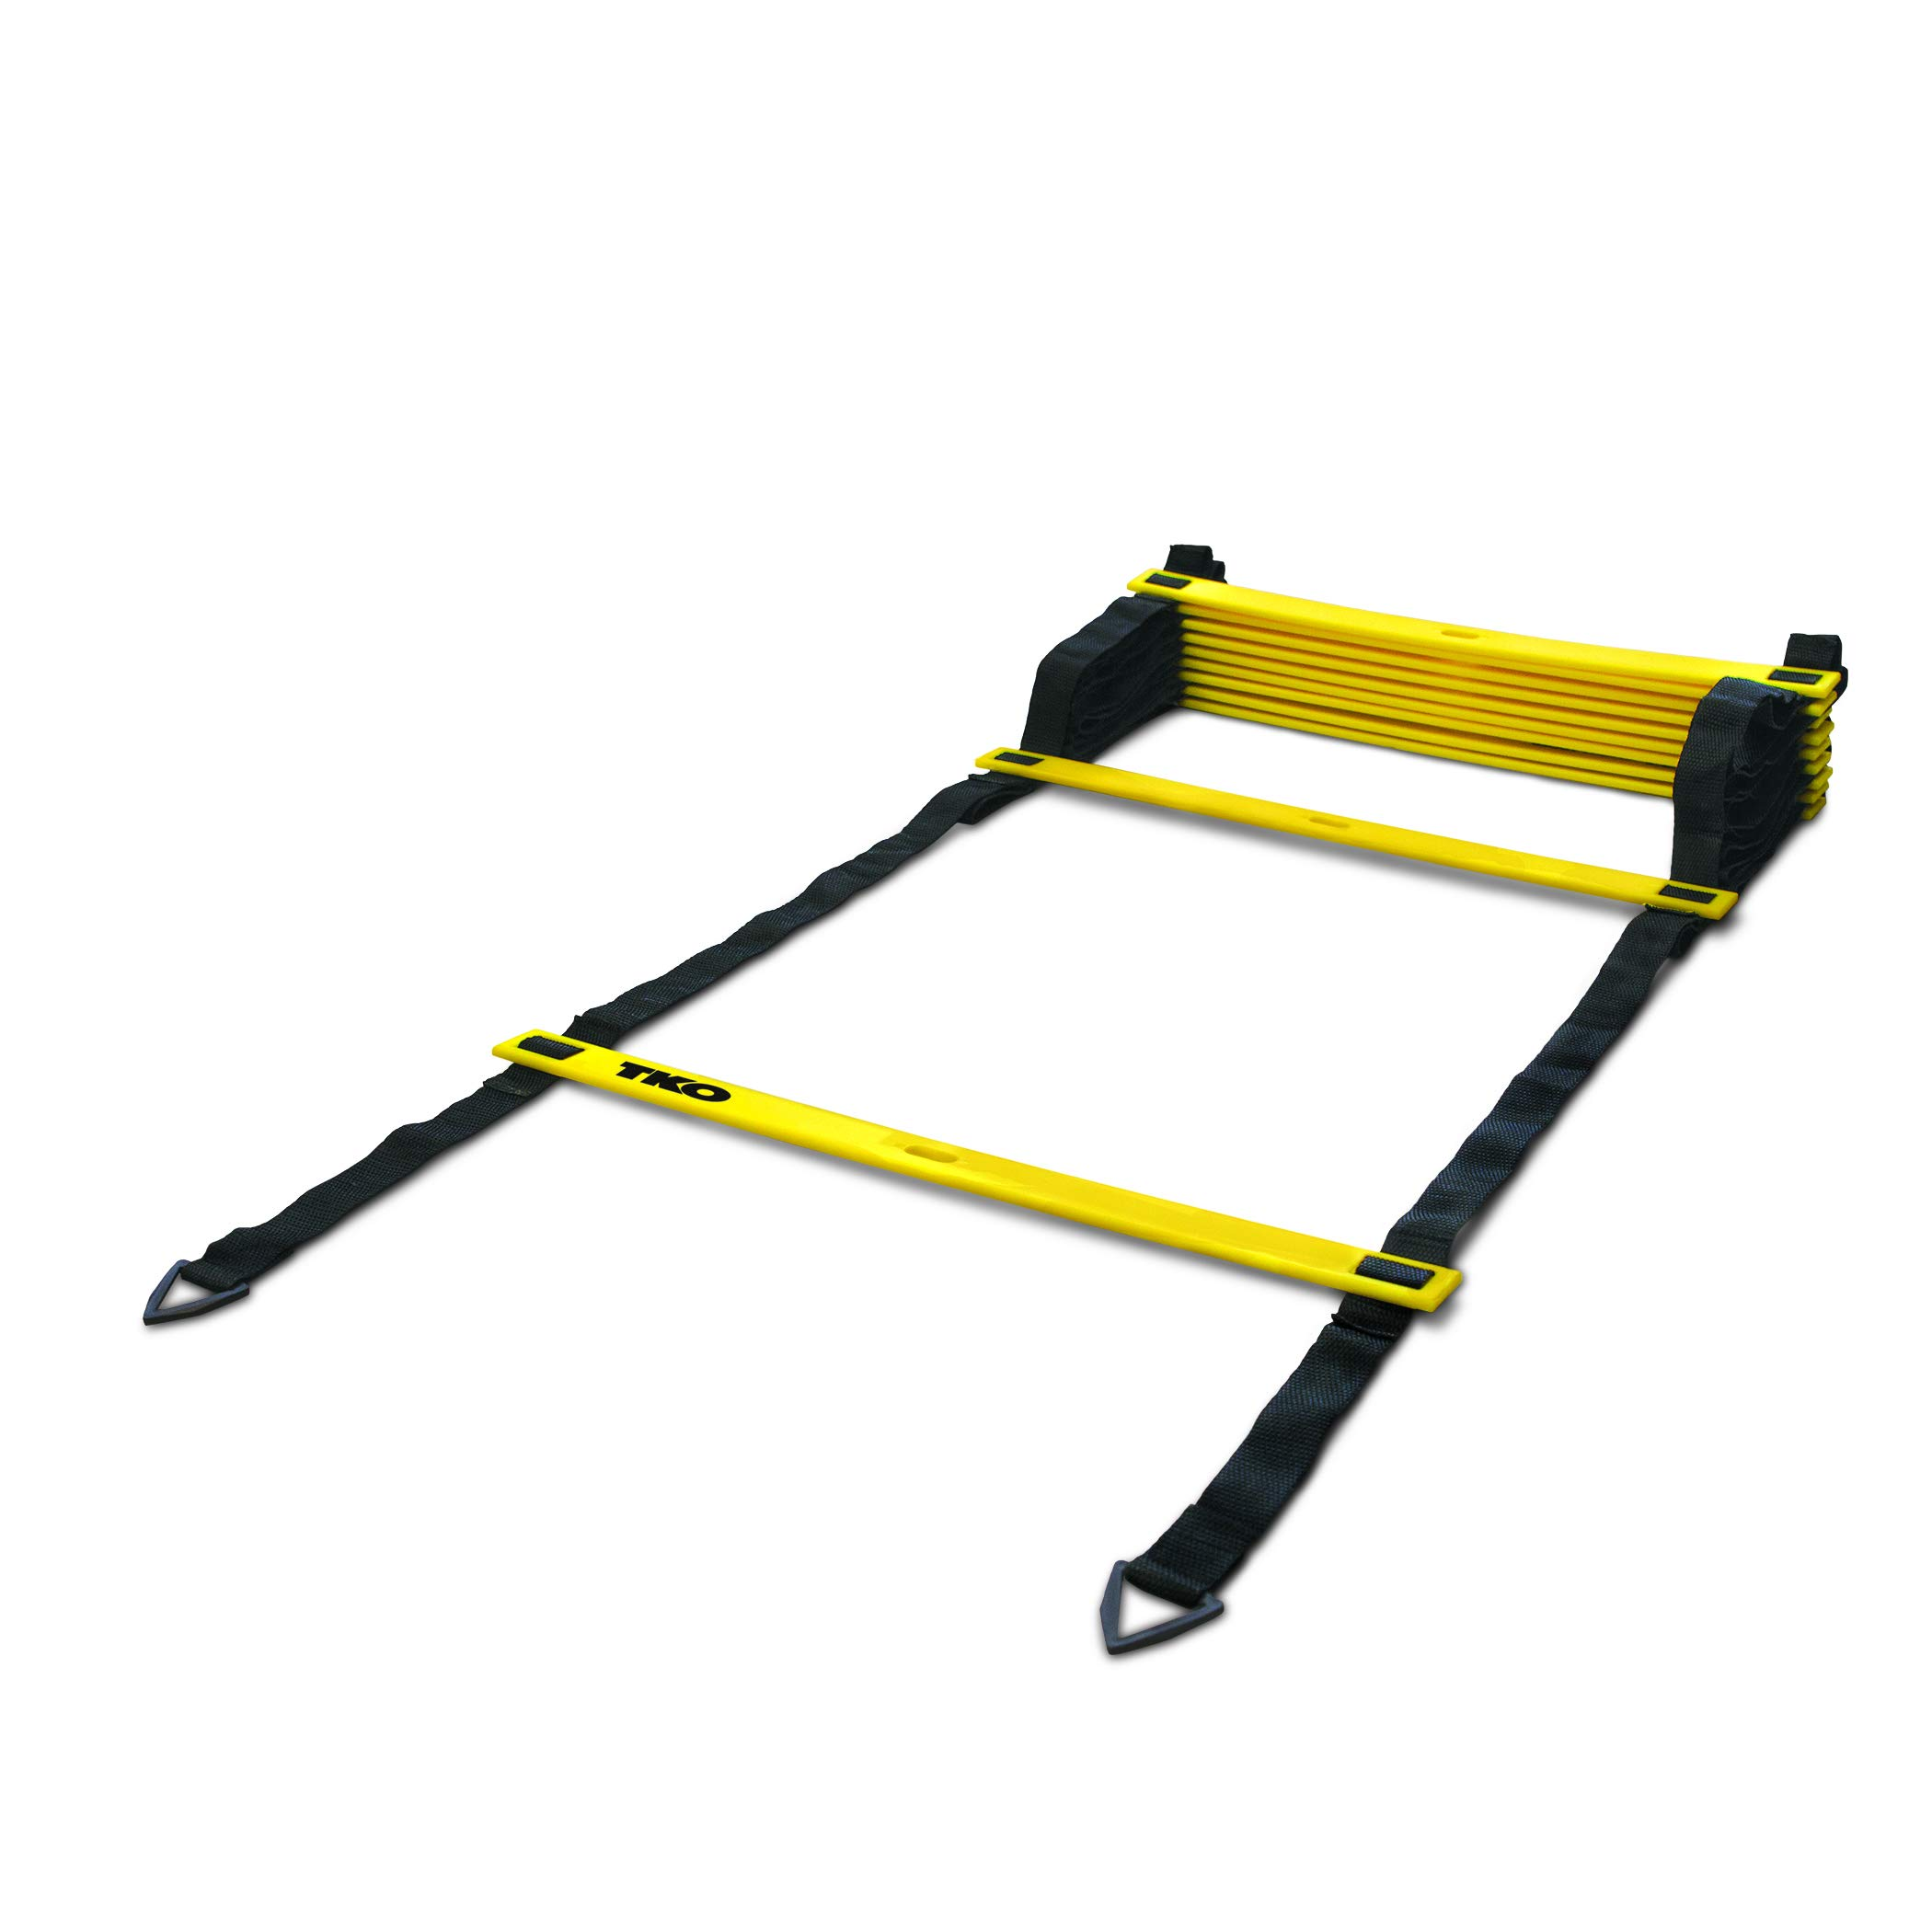 TKO Extreme Speed Ladder for Agility Training - Yellow